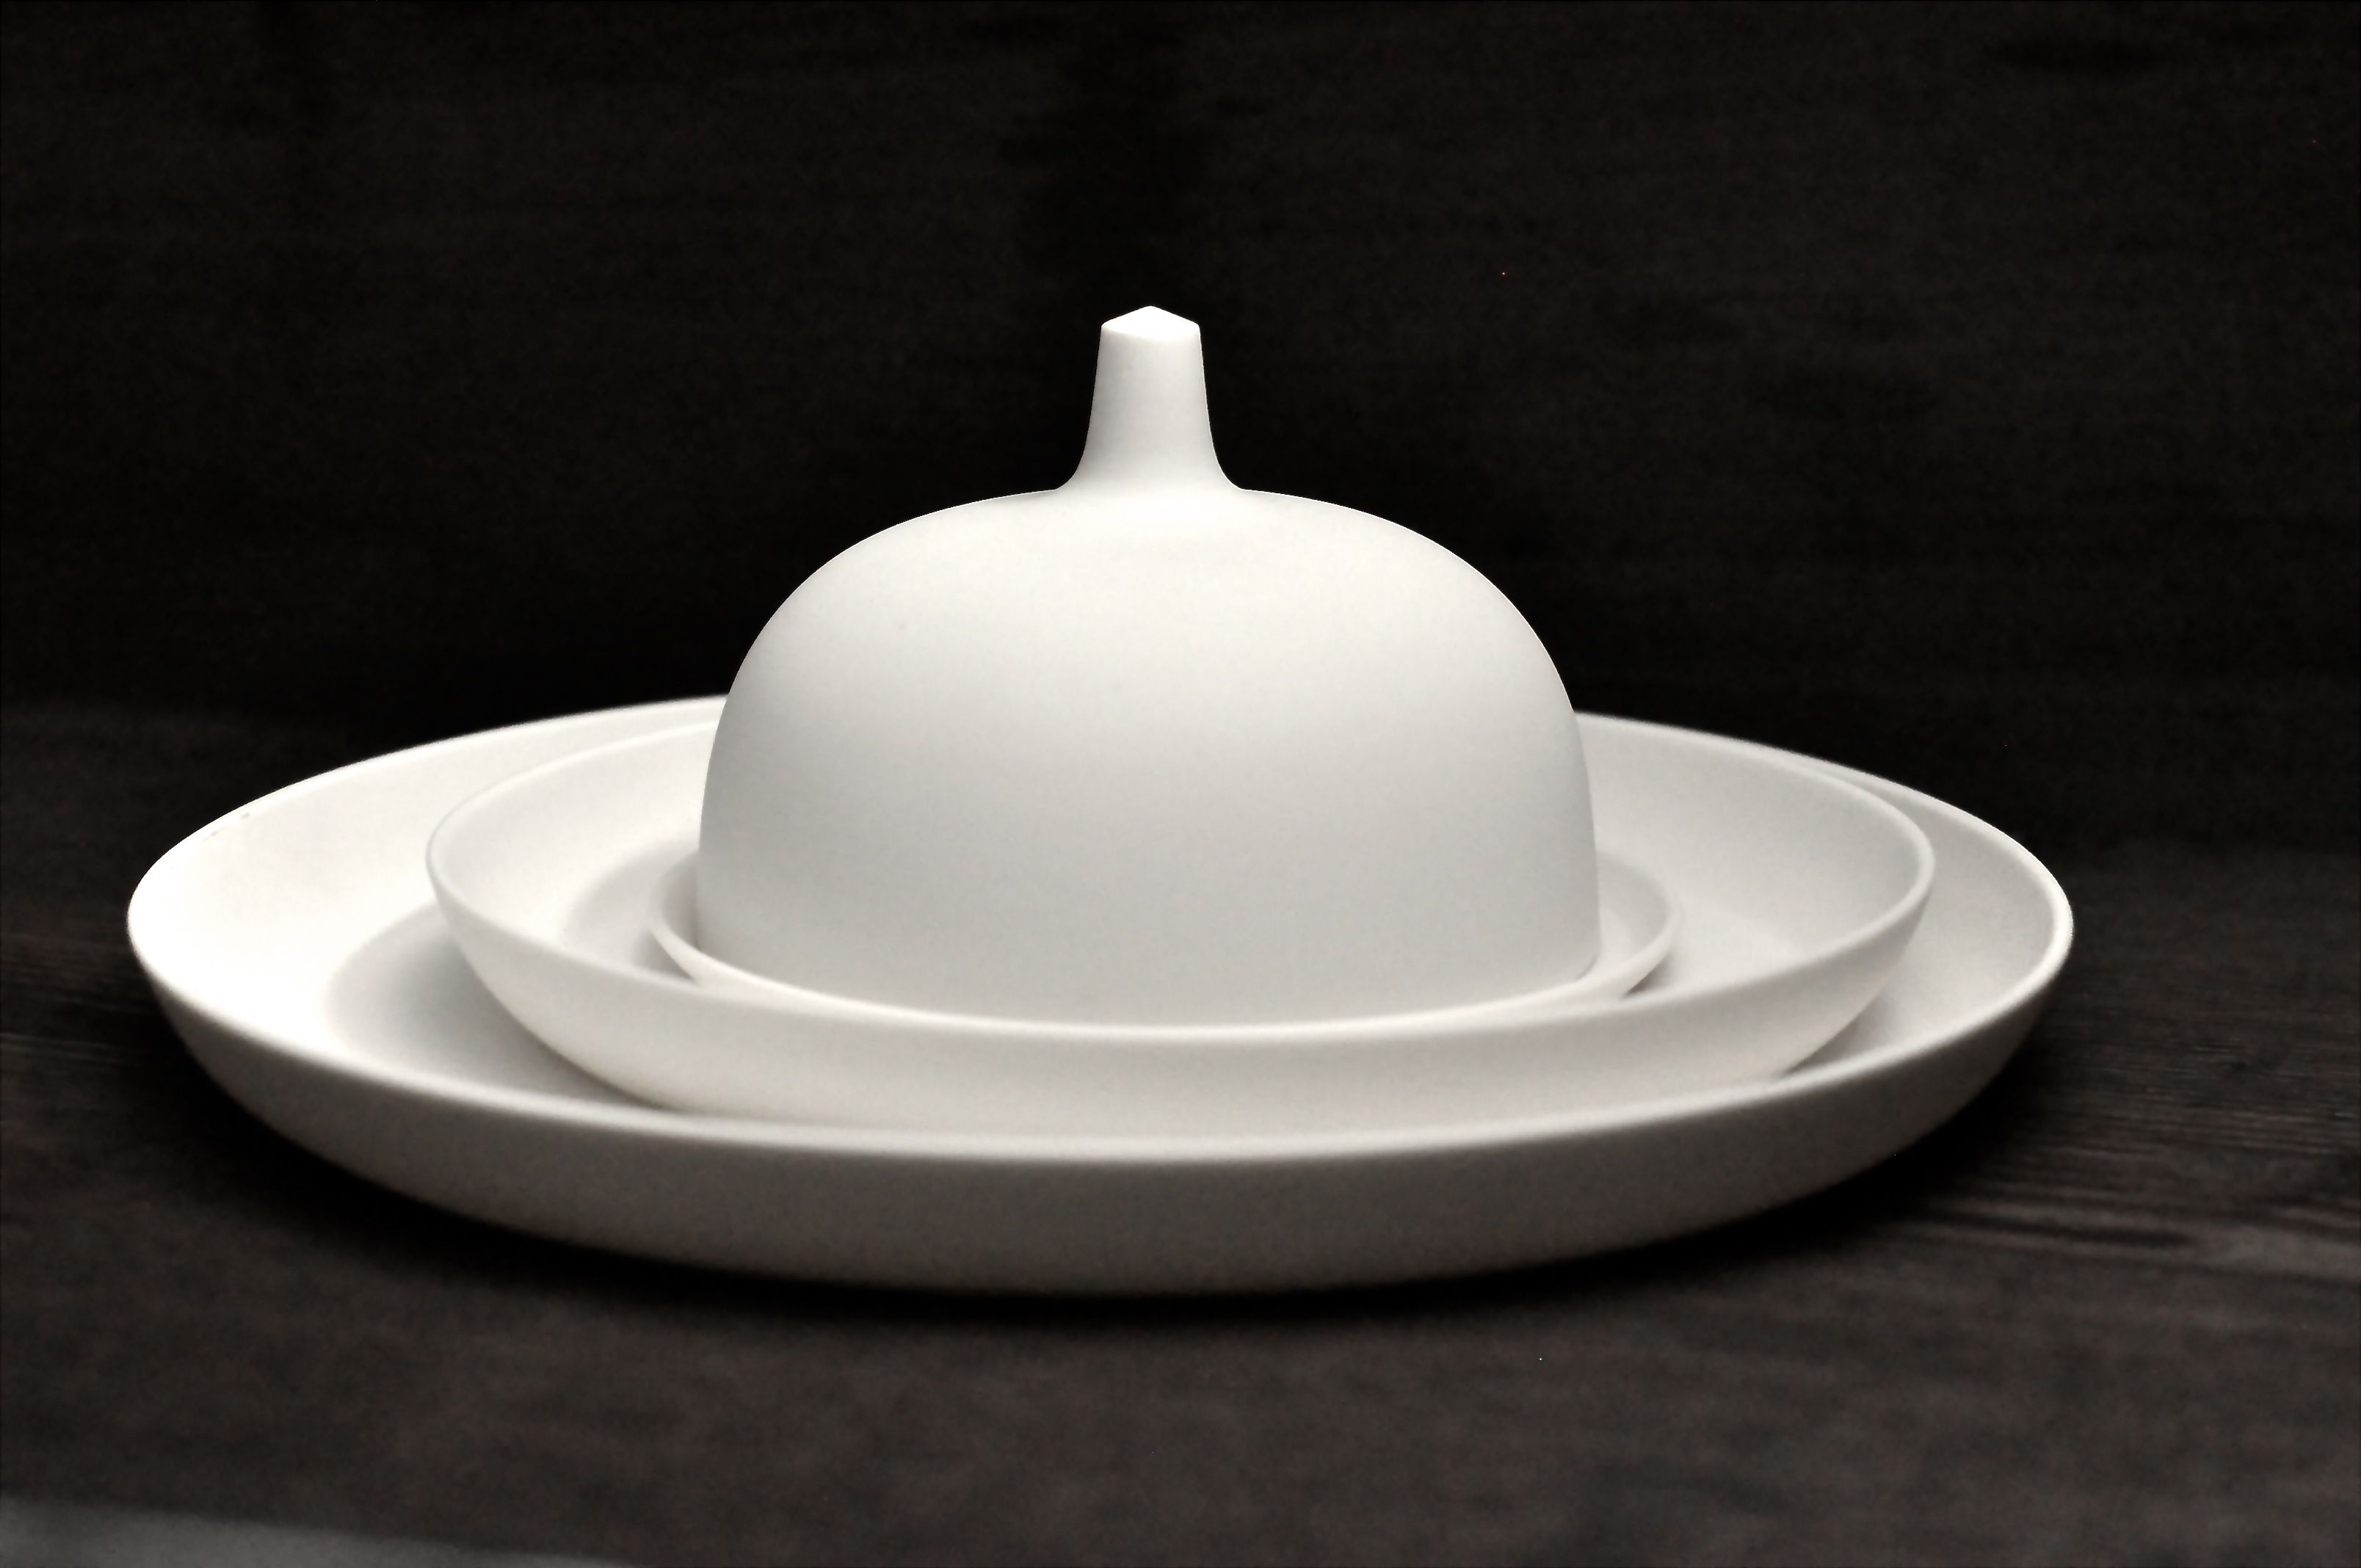 tableware white, pure, handmade, set design hande made by artdentity